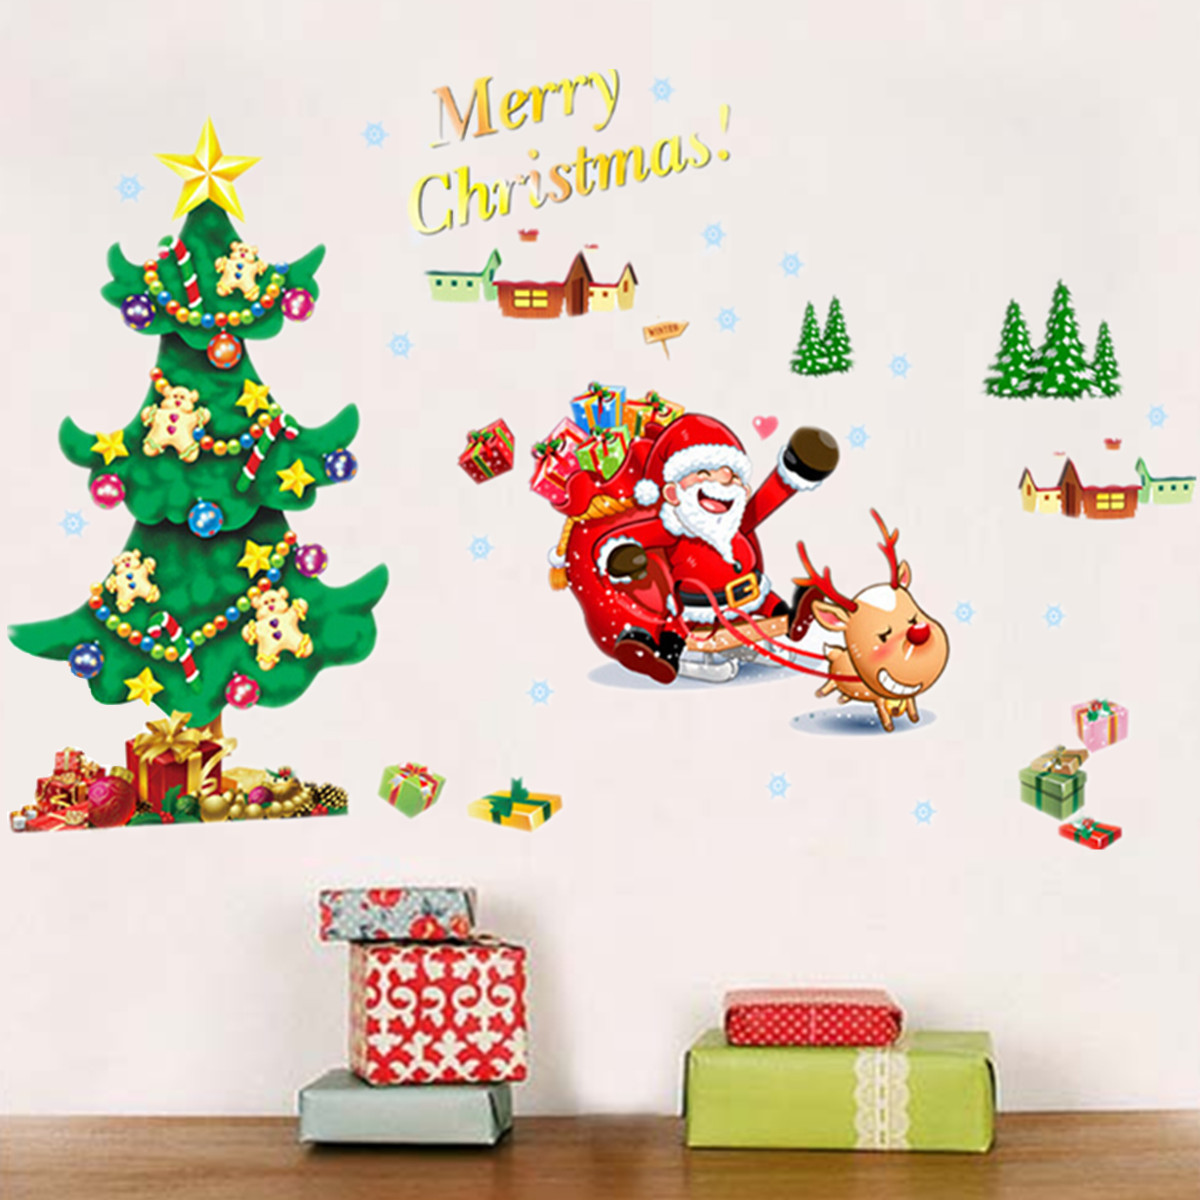 Merry Christmas Santa Claus Tree Wall Sticker Removerable DIY Window Door  Wall Home Decor Part 82